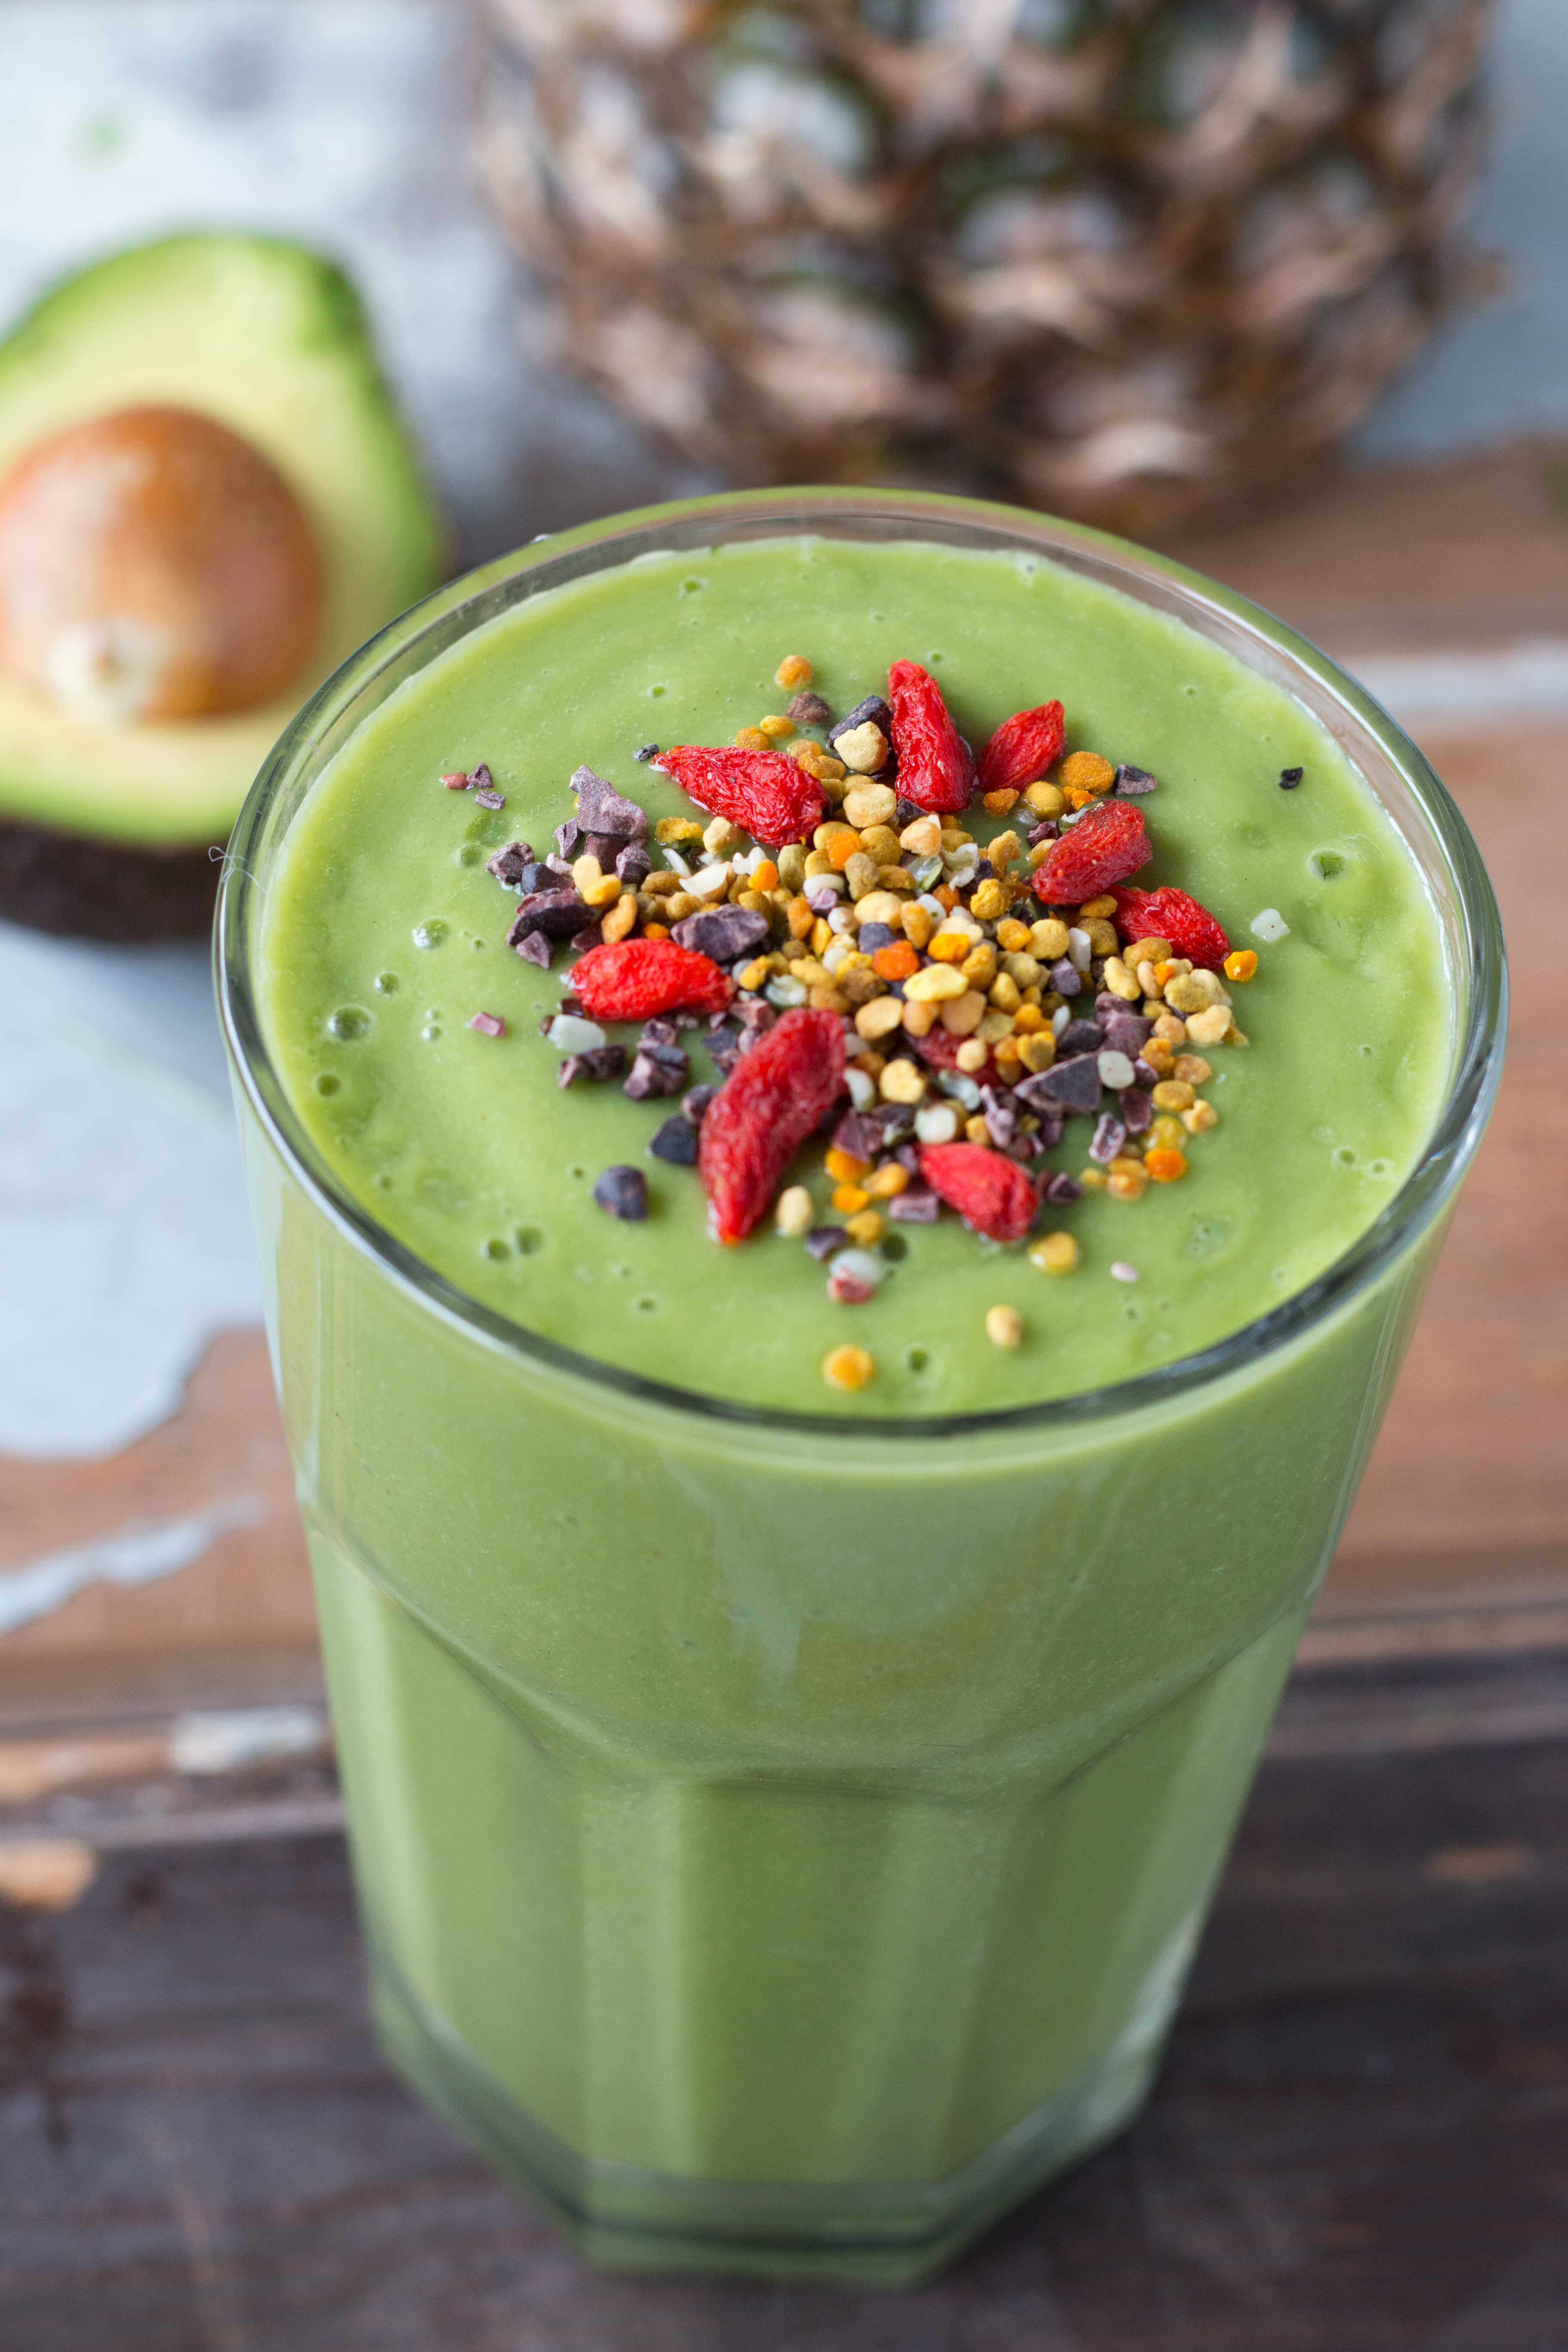 Slow Juicer Avocado : Juice Detox Smoothie with Superfoods by Rosalie Ruardy